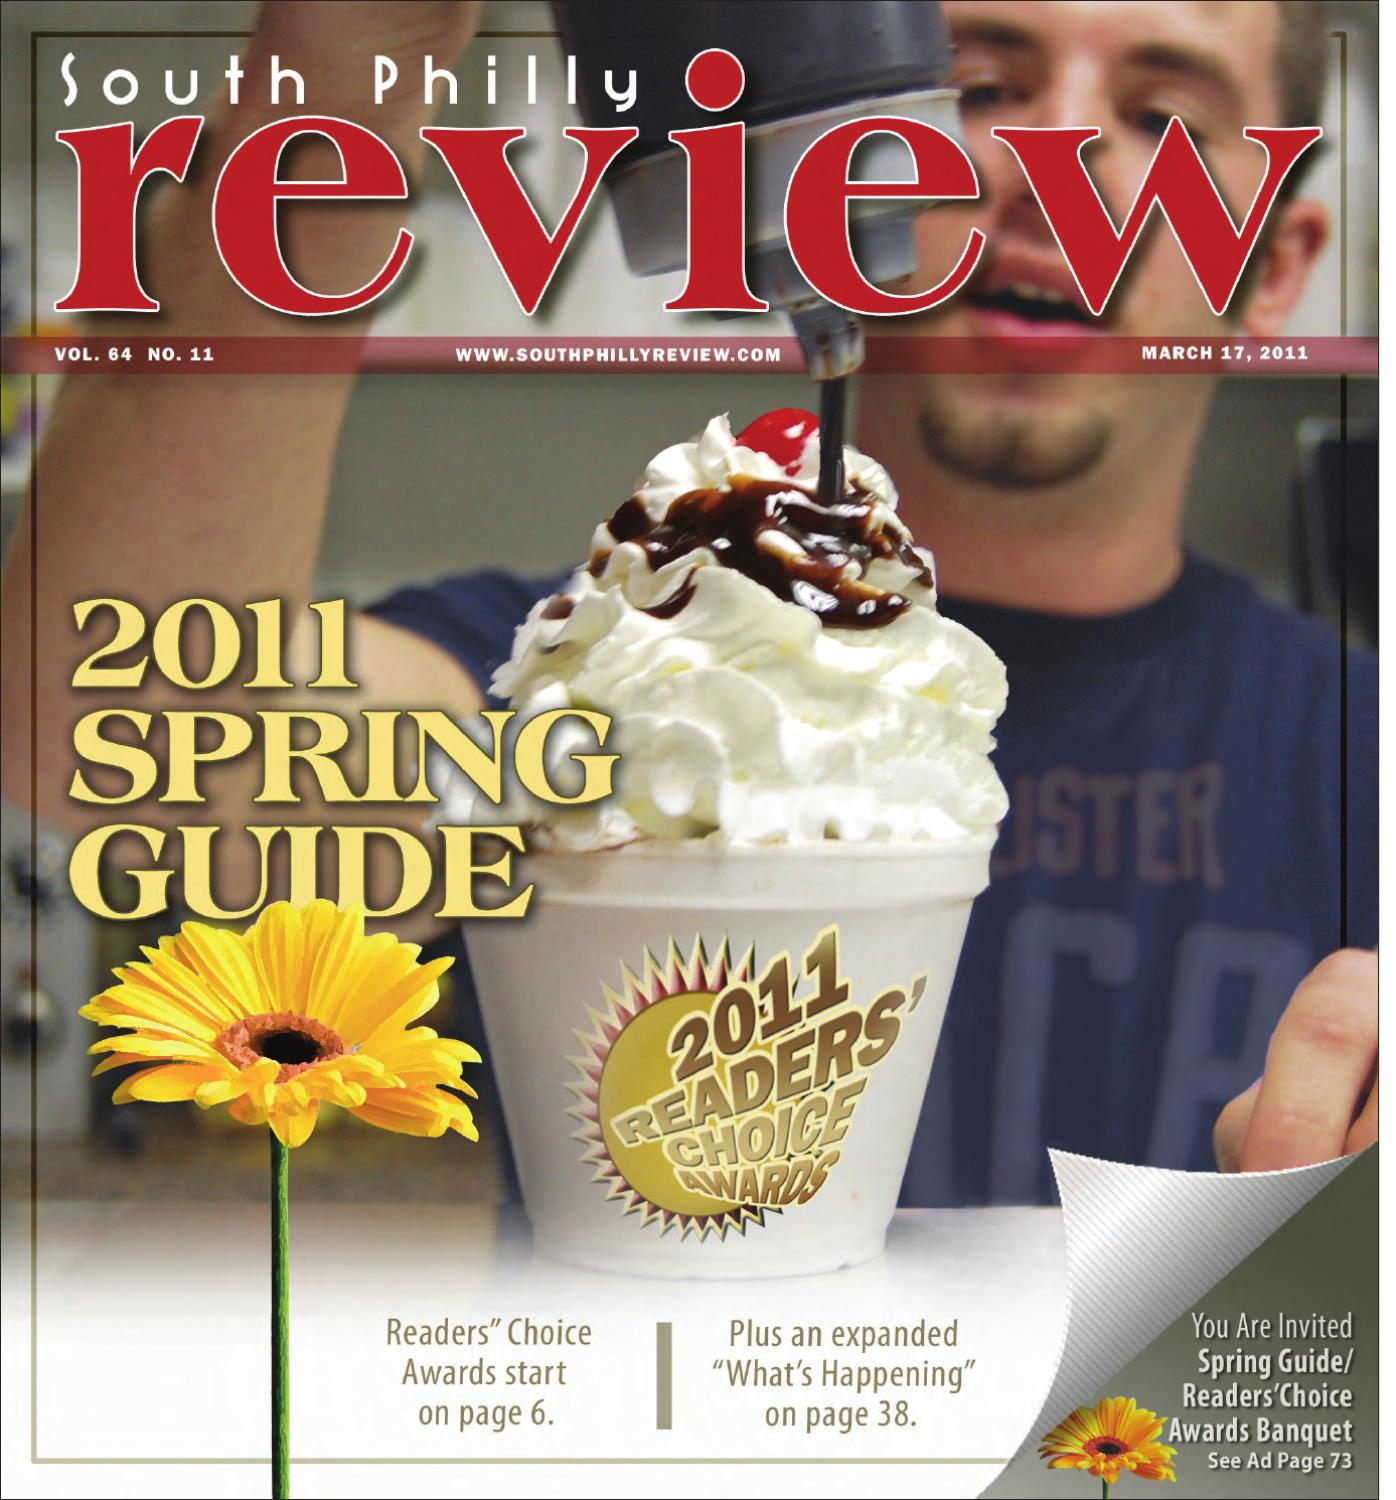 south philly reviw 3 17 11 by south philly review issuu